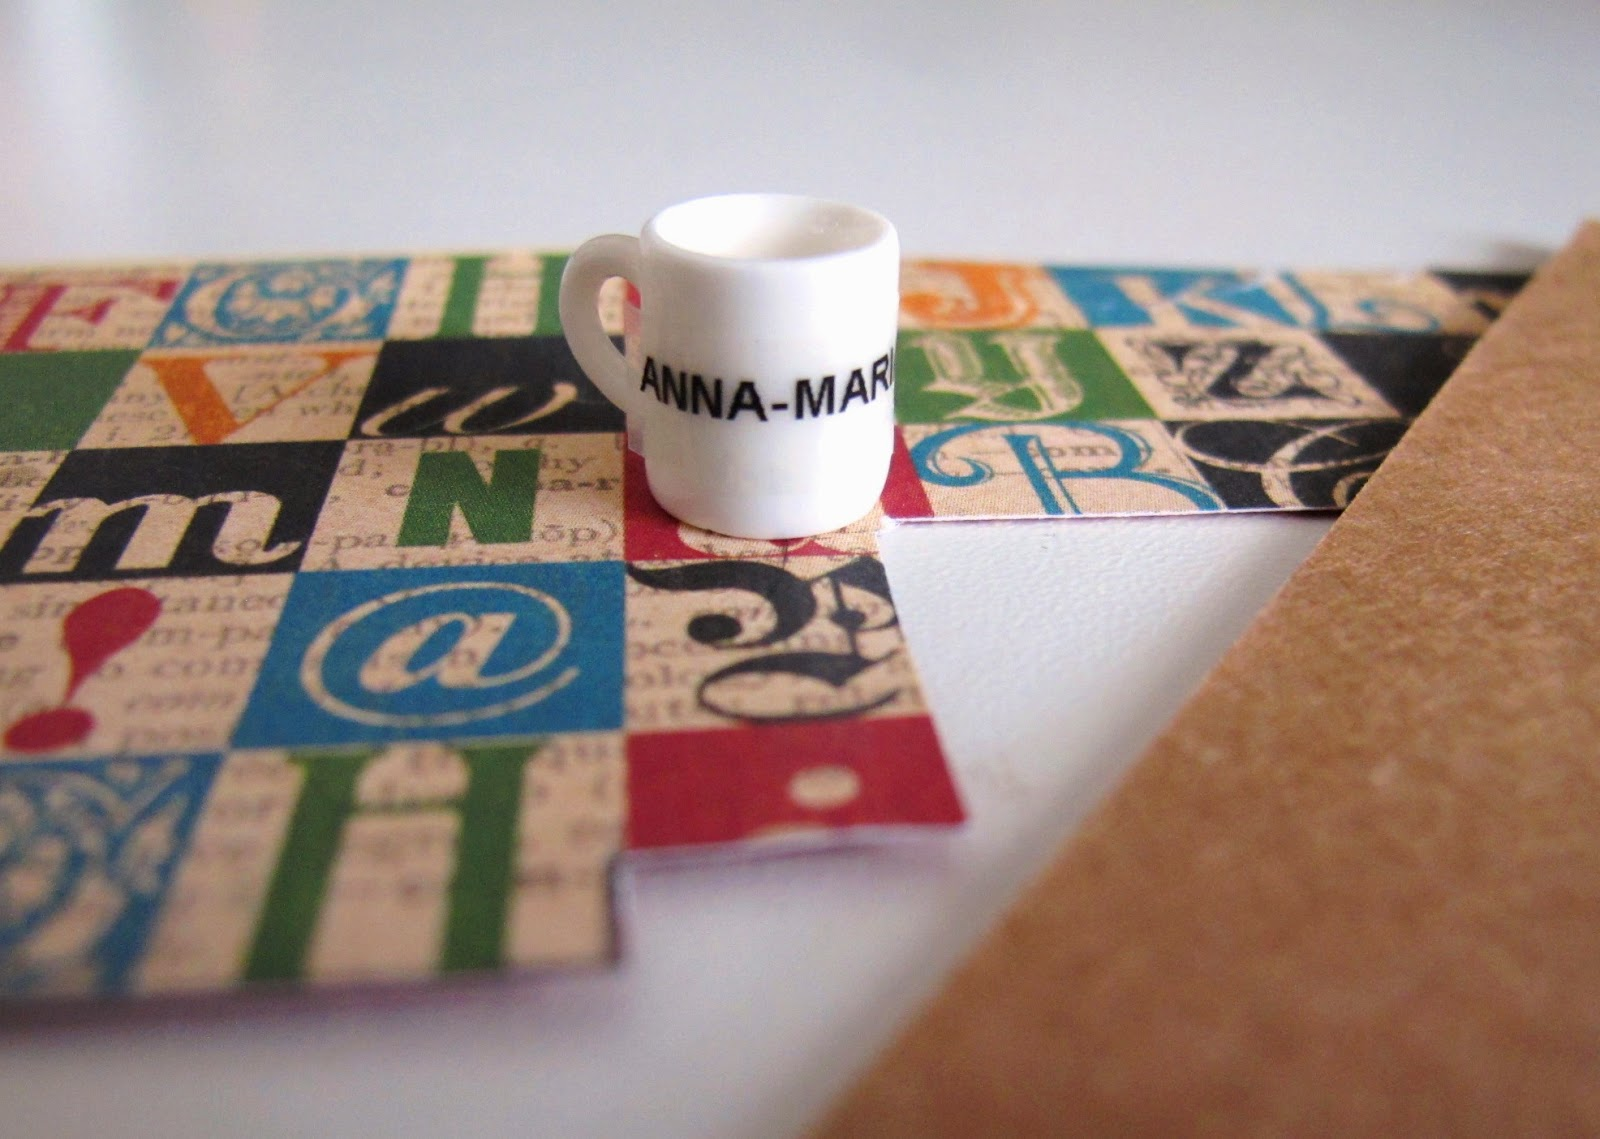 A piece of scrapbooking paper printed with squares containing typography. On it is a dolls' house miniature mug, and next to it is a piece of brown cardboard.